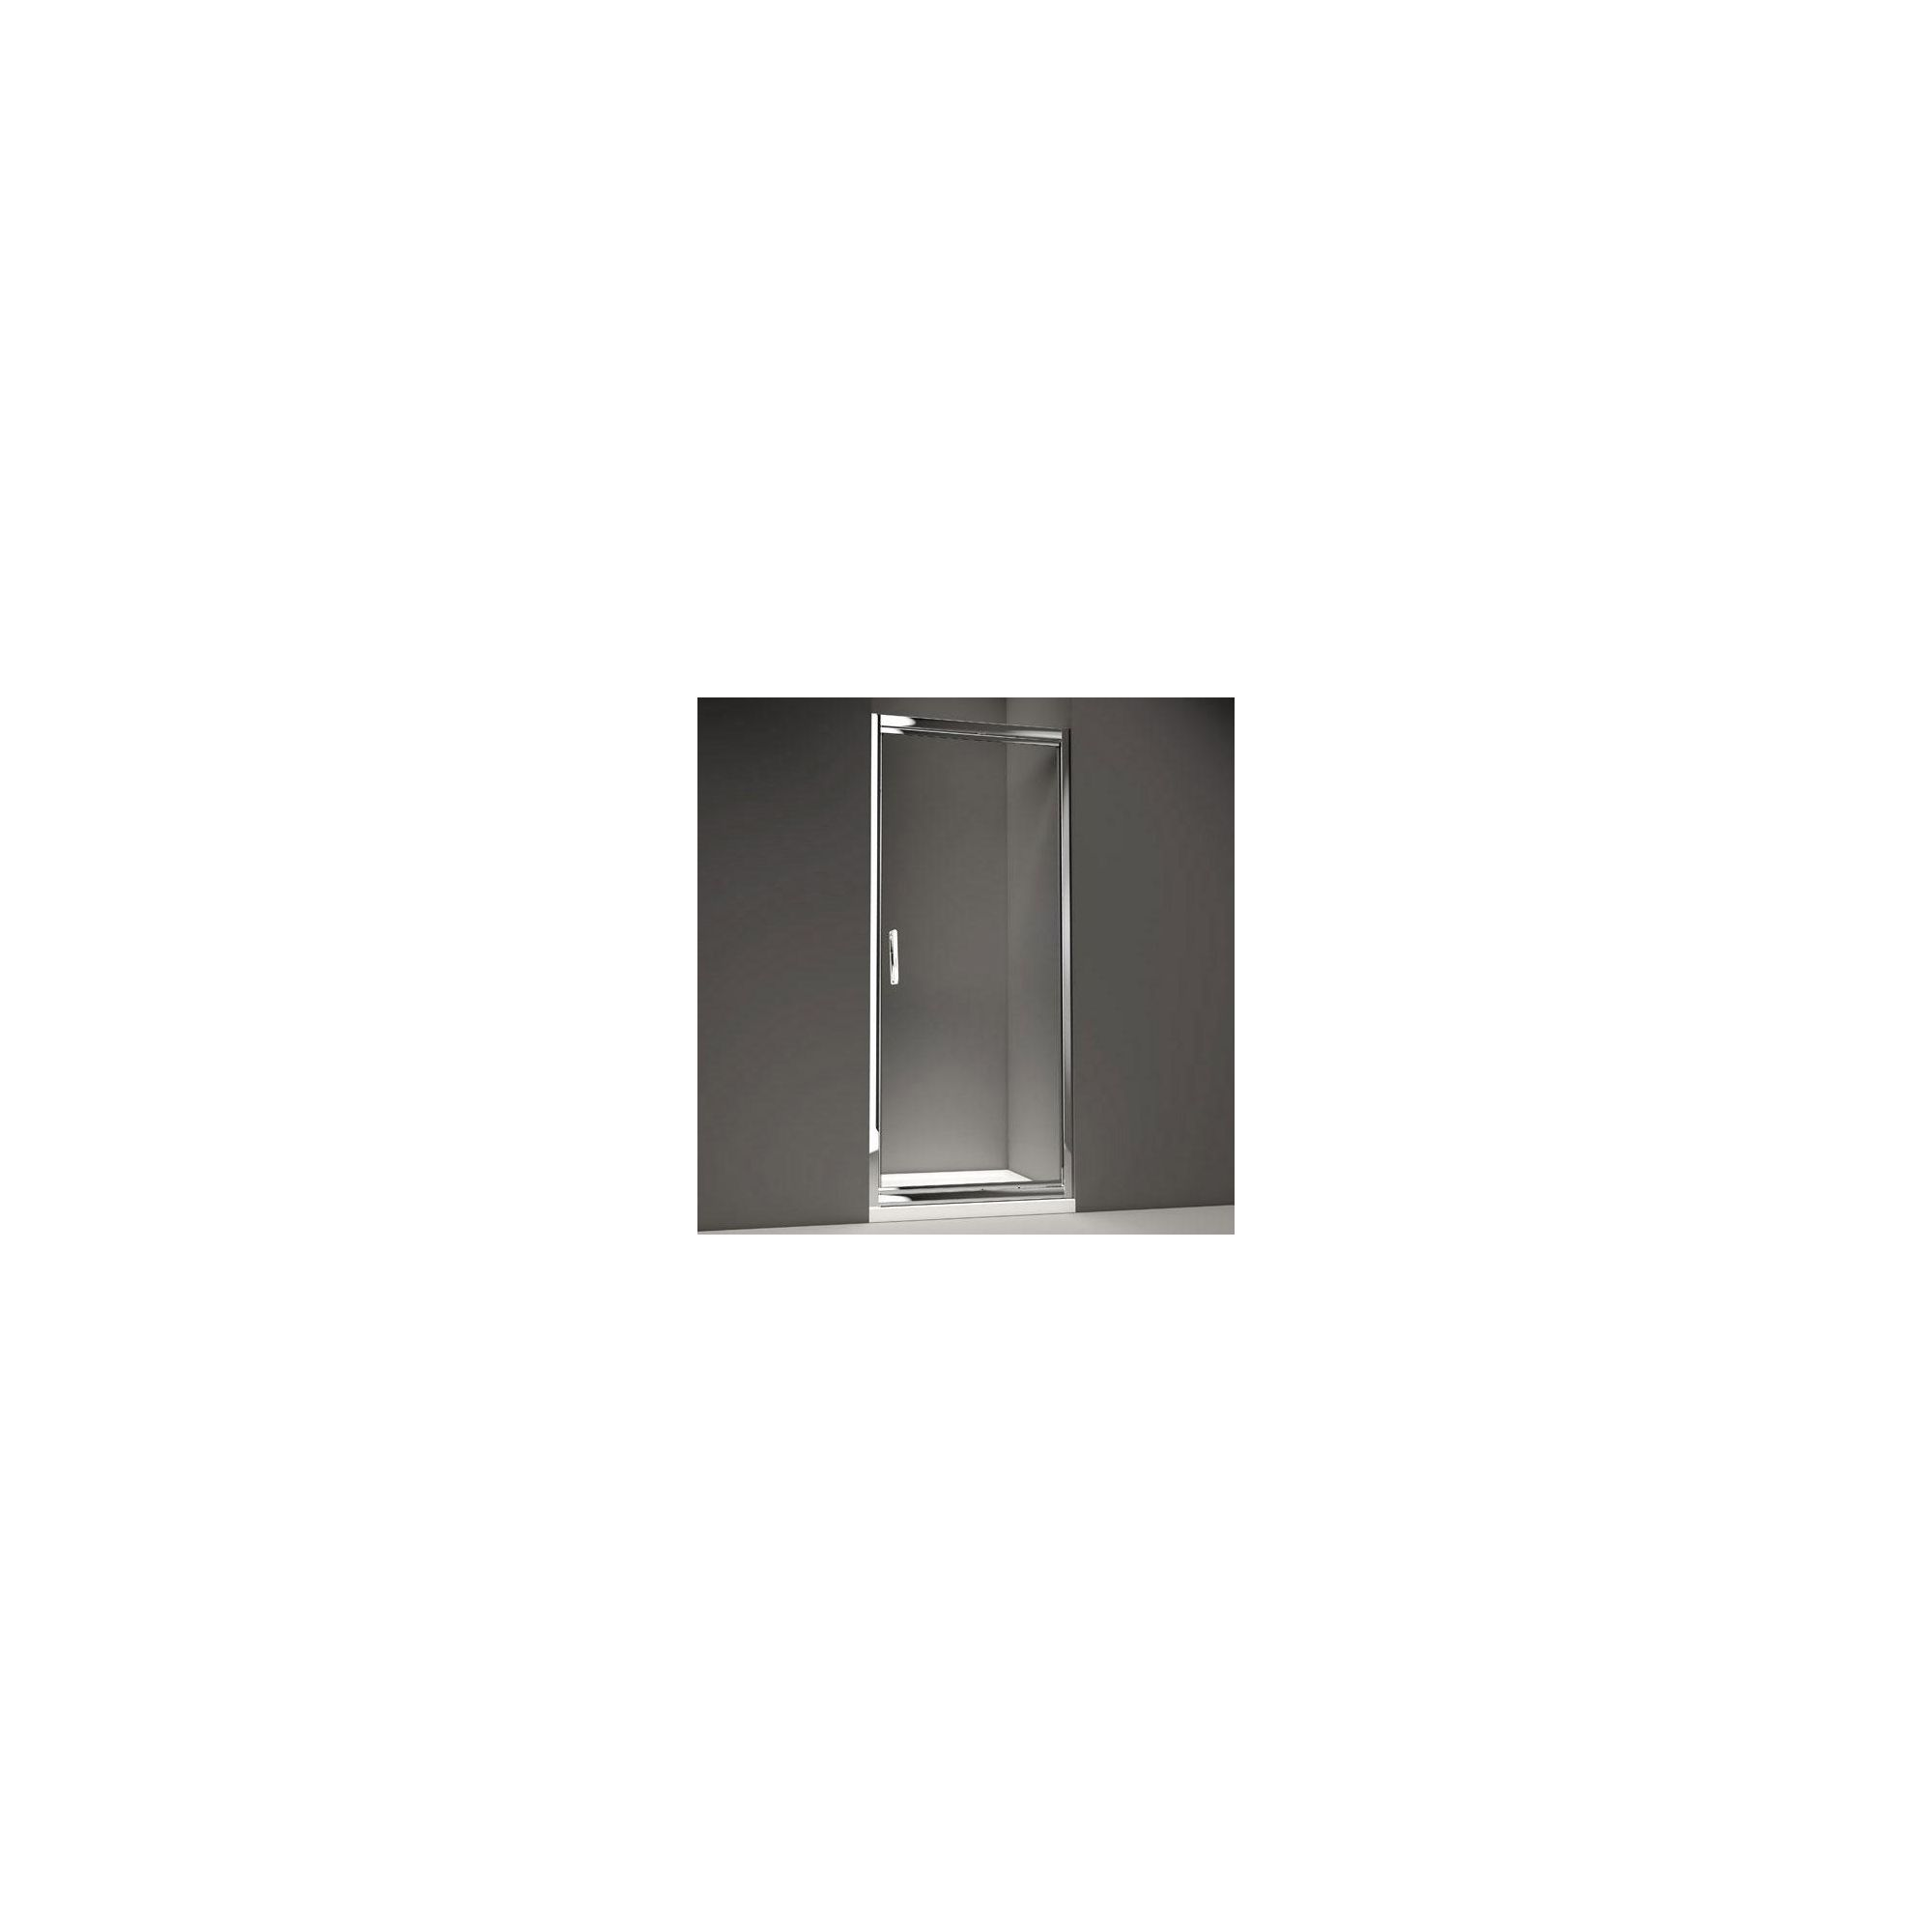 Merlyn Series 8 Infold Shower Door, 800mm Wide, Chrome Frame, 8mm Glass at Tescos Direct